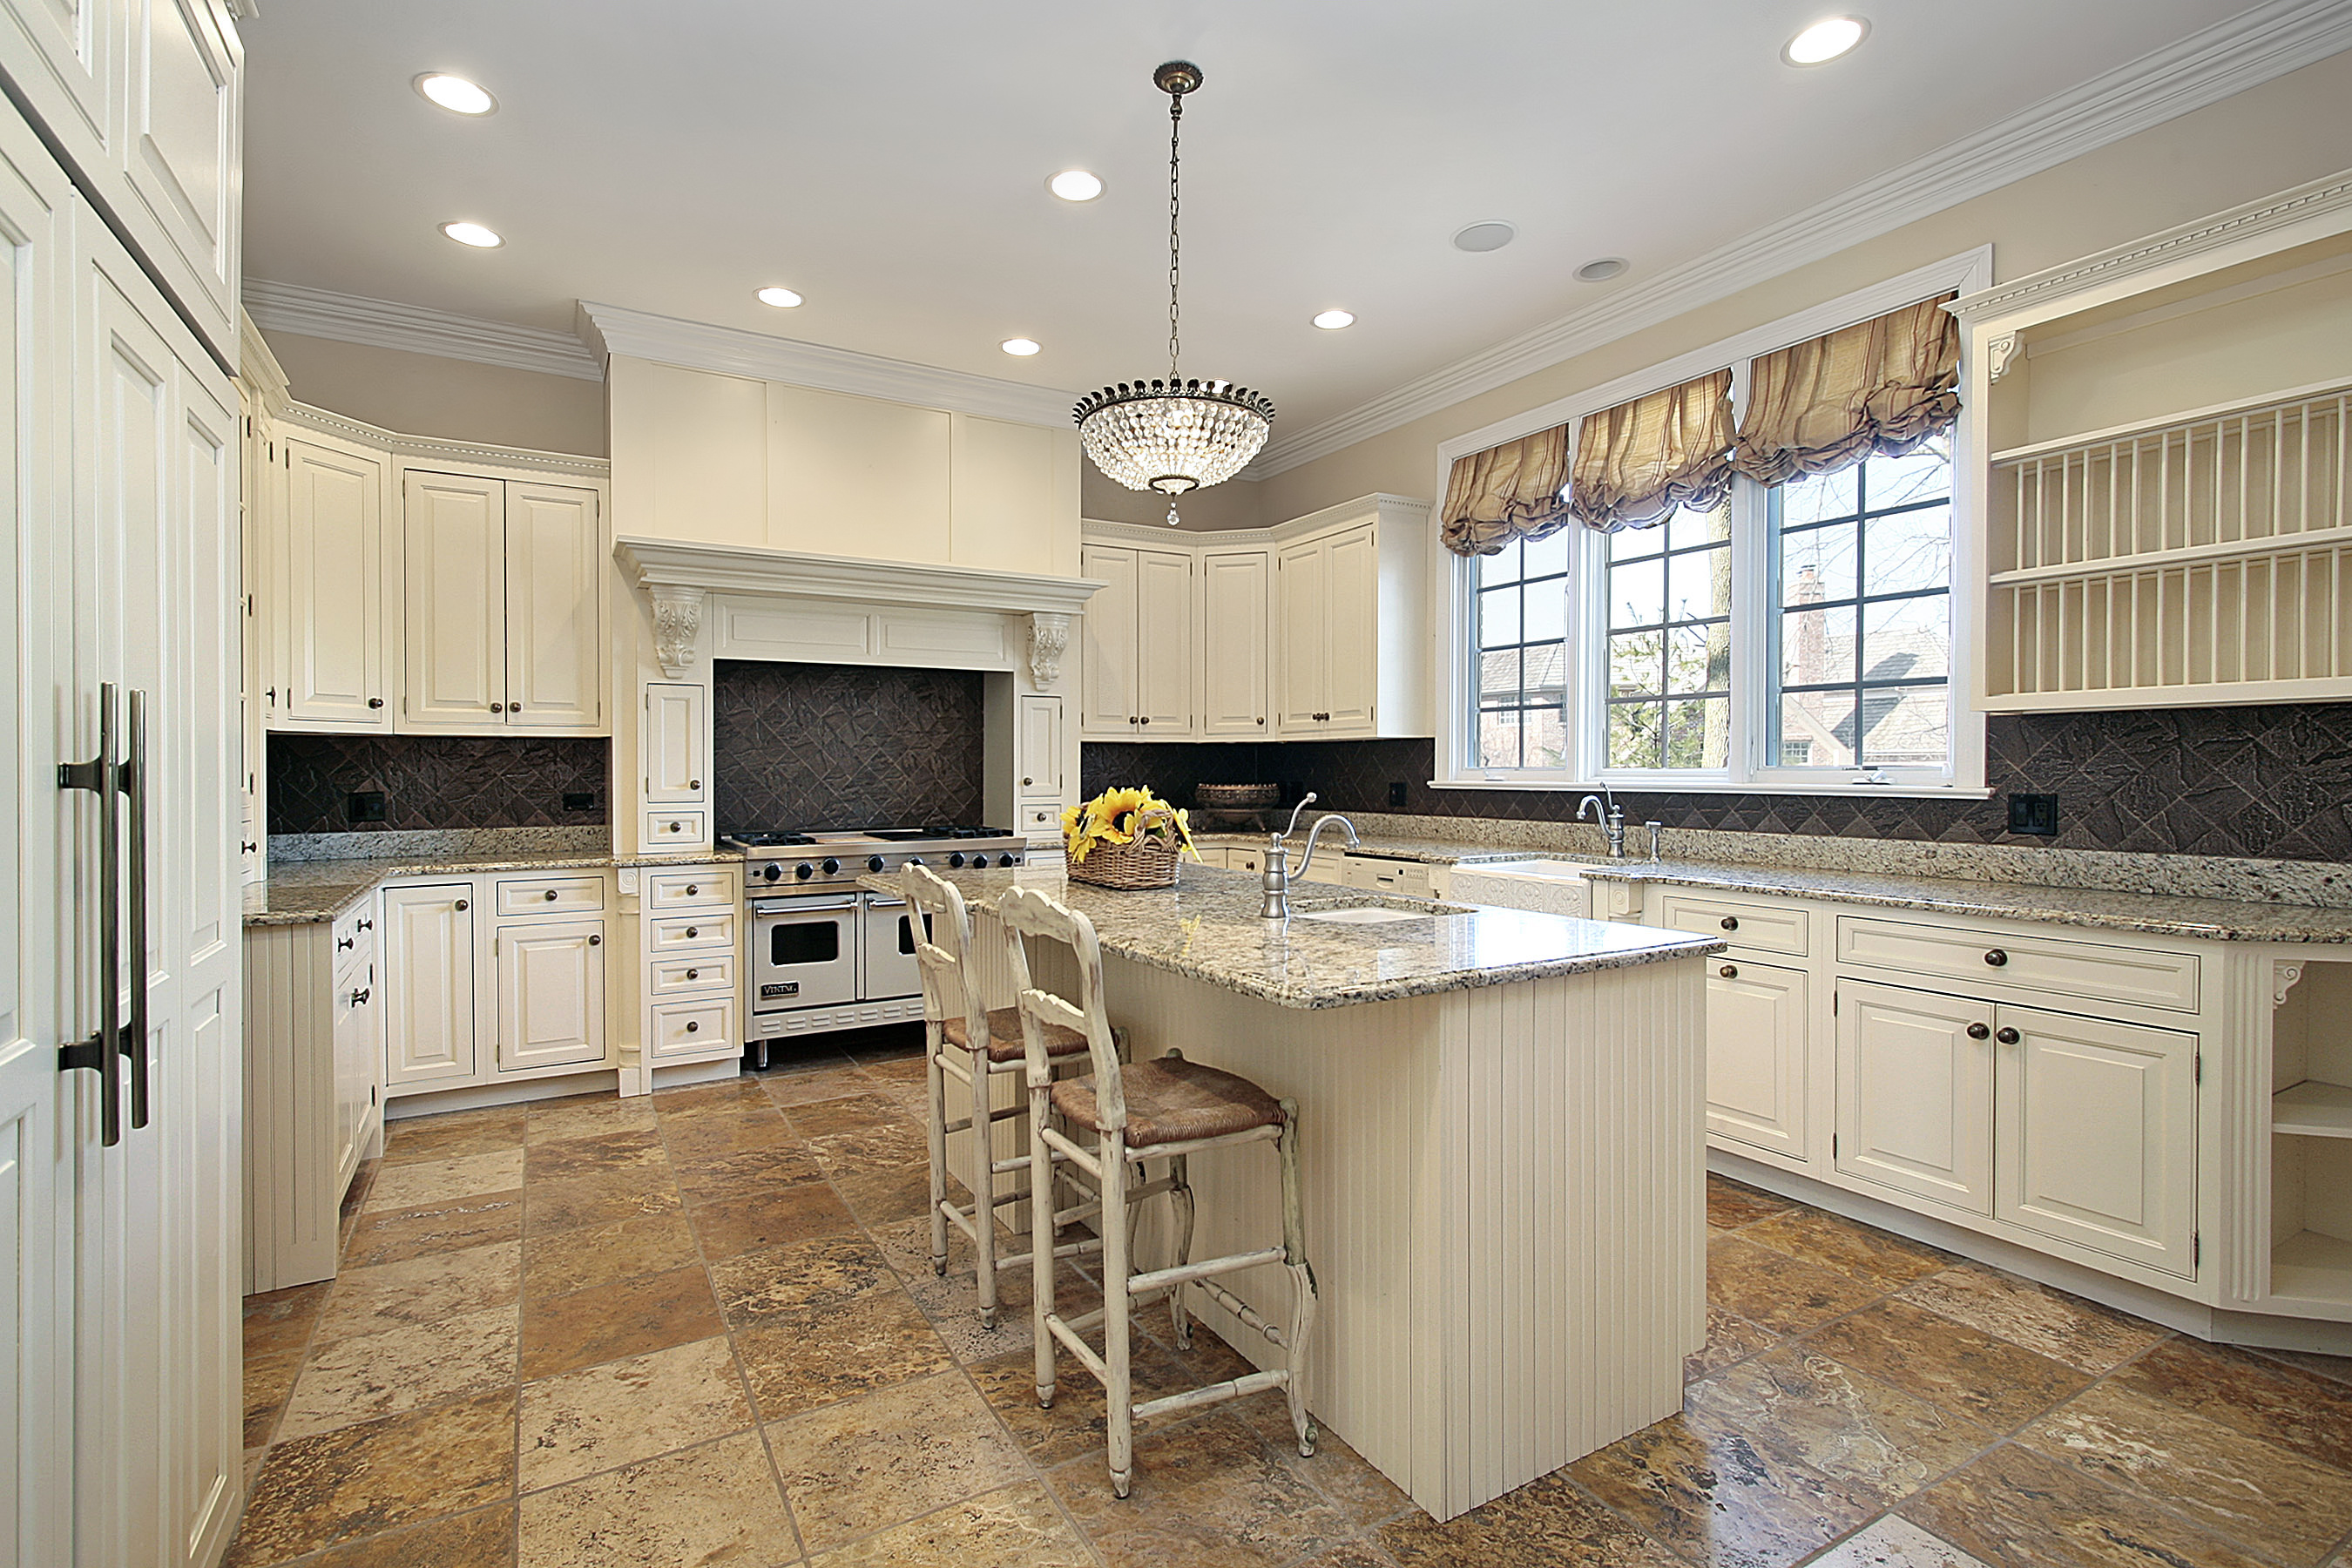 marble counters - Repair Now, Save Later